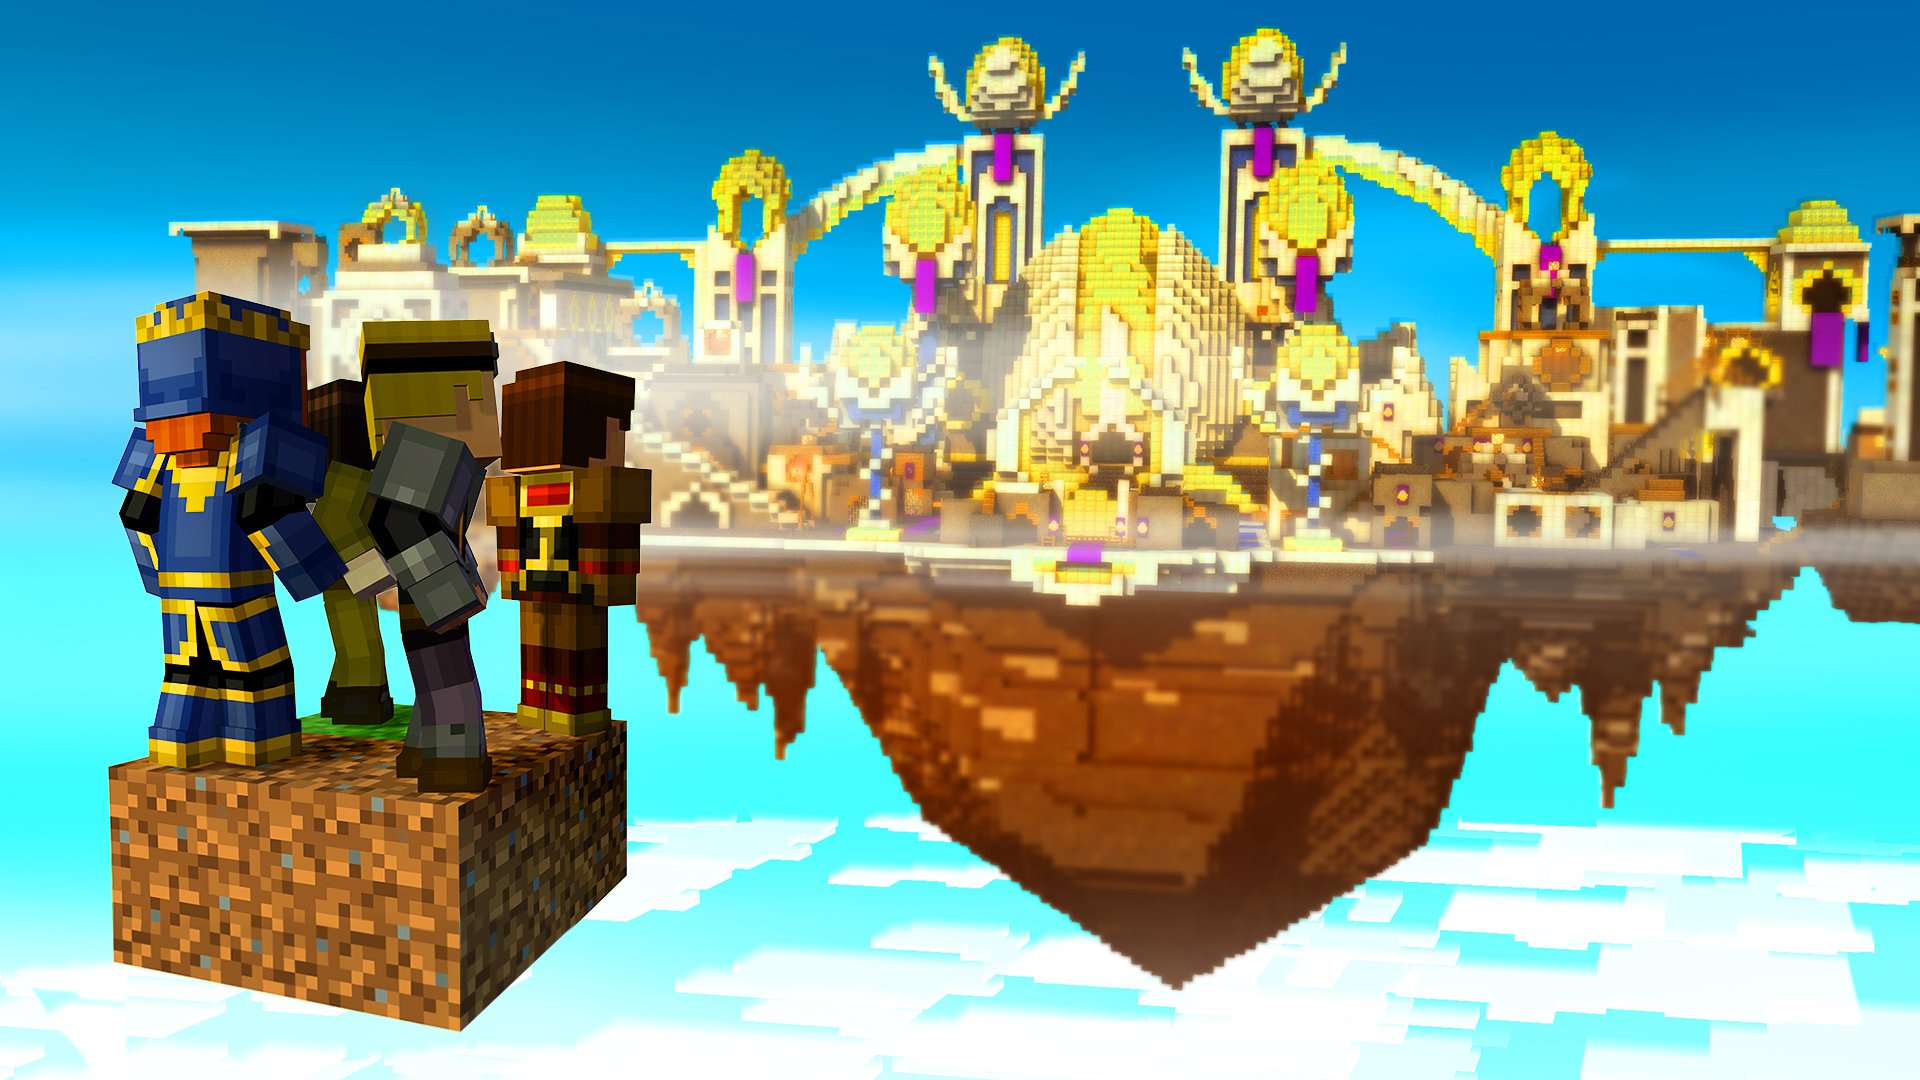 Minecraft Story Mode episode 5 confirmed, along with epsiodes 6, 7 and 8